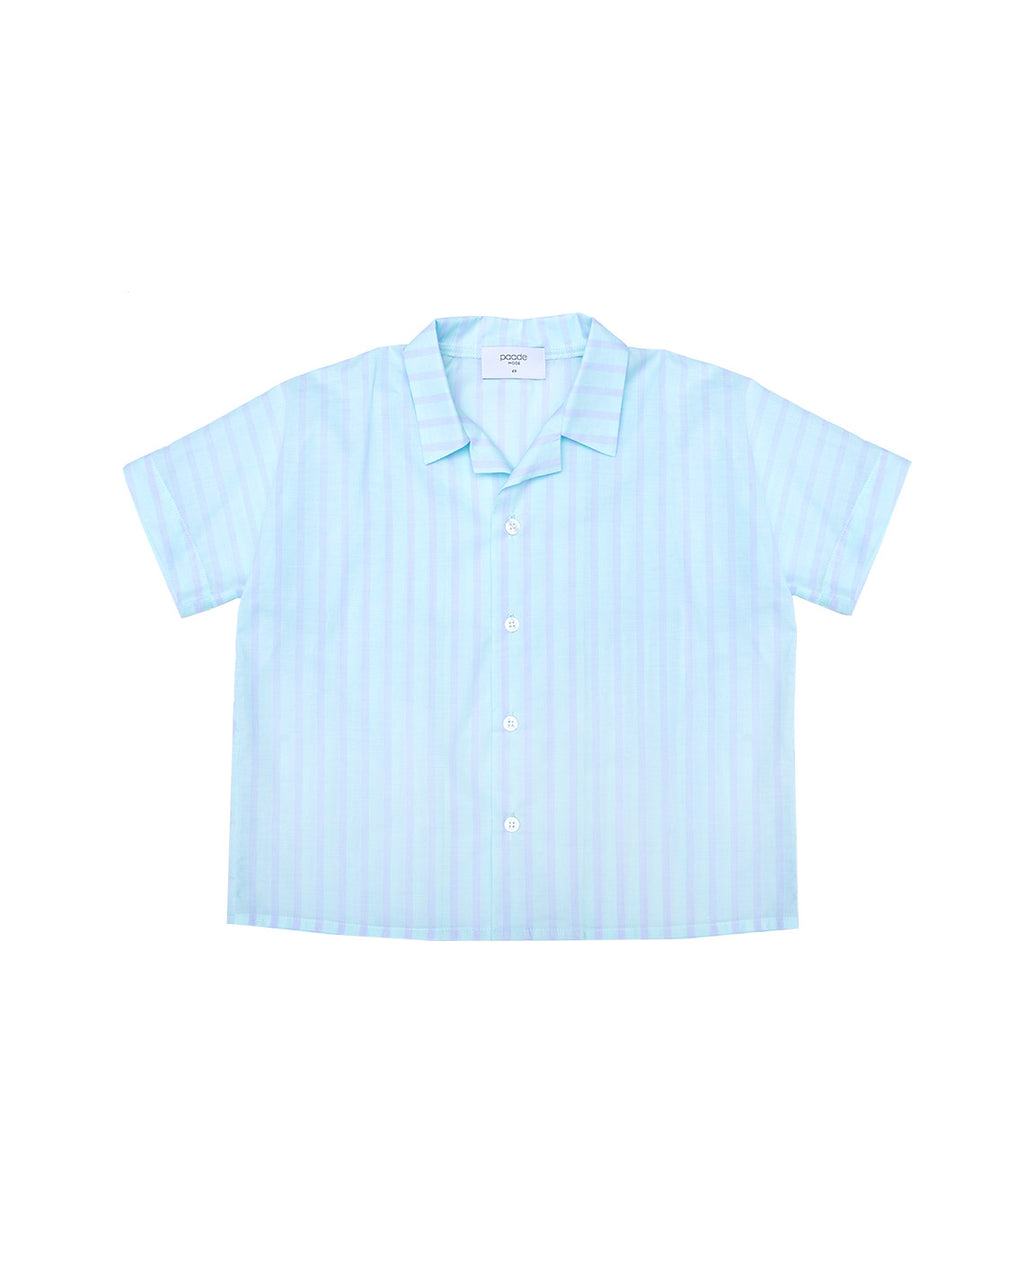 Cotton Shirt - Clover Blue